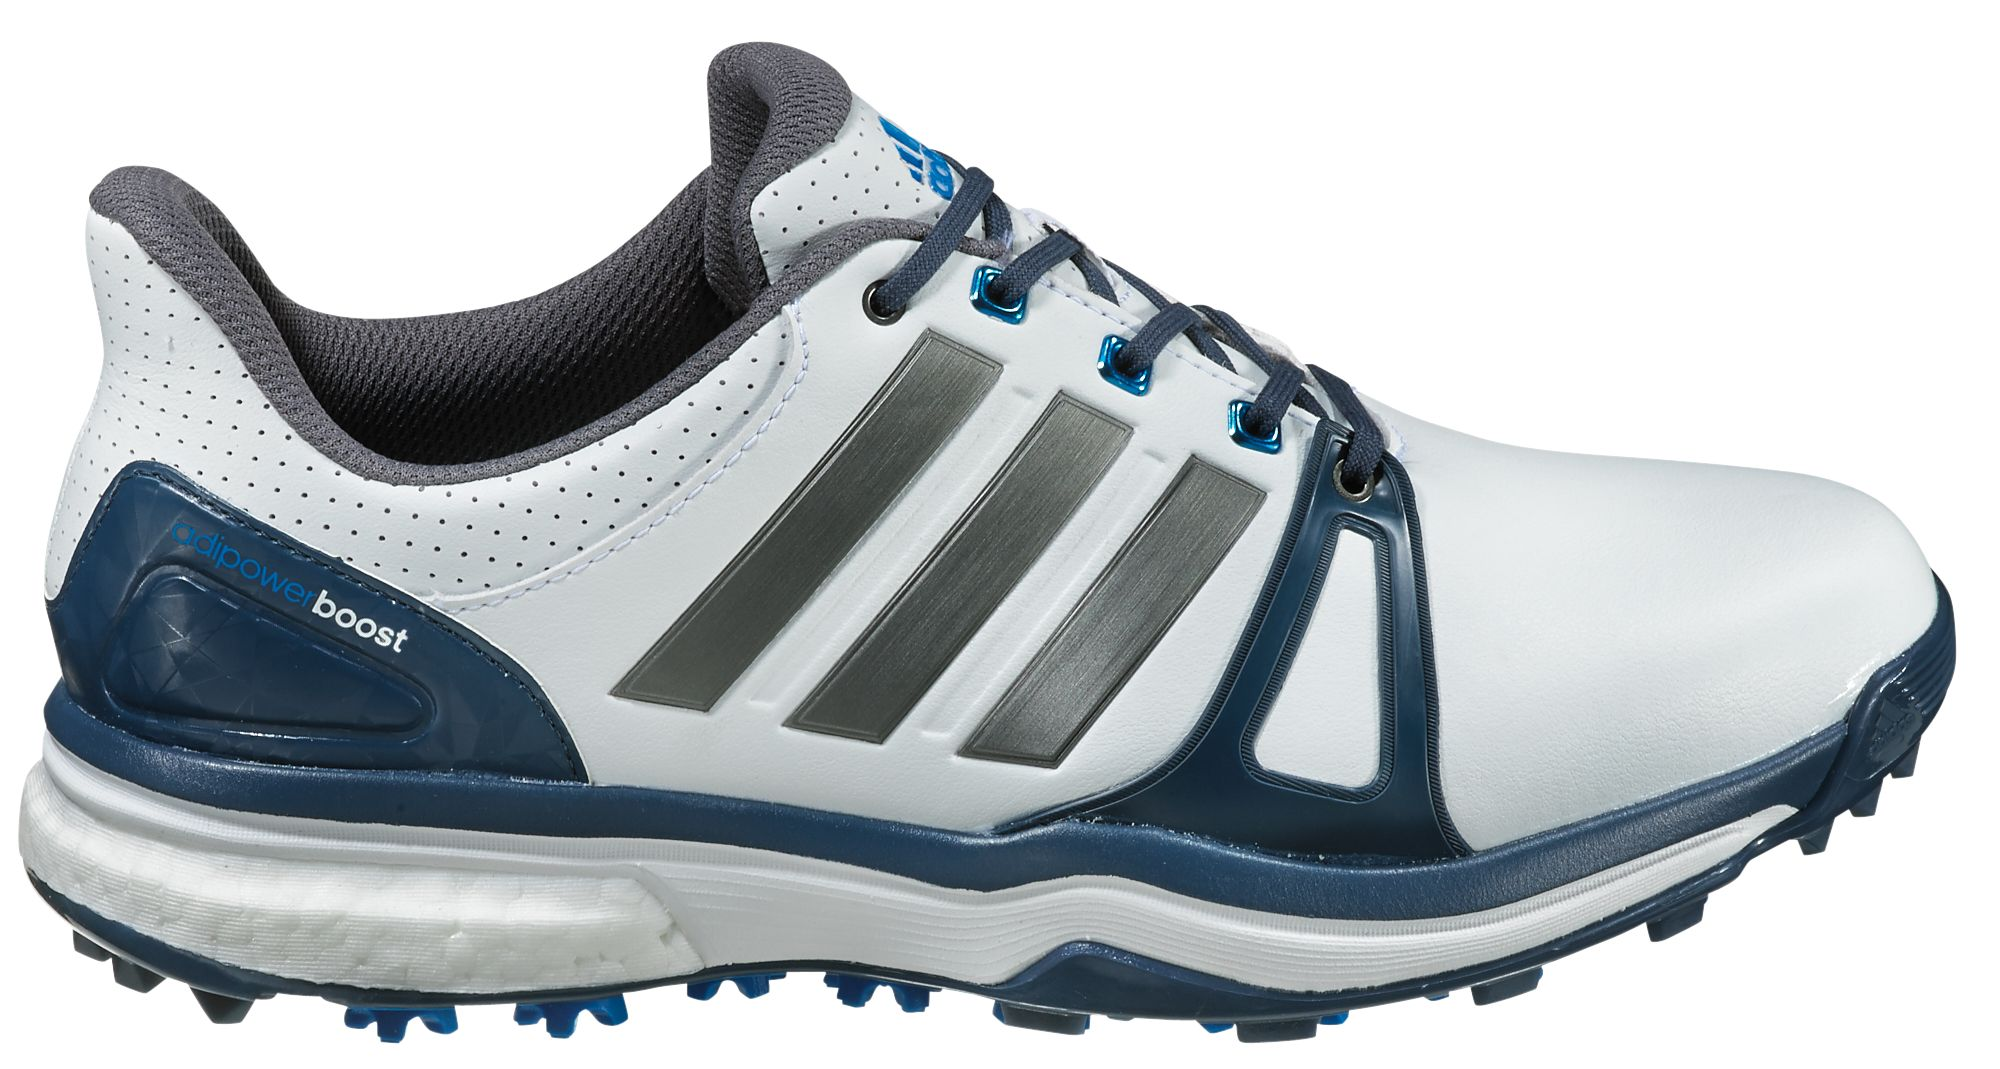 adidas adipower boost cleats